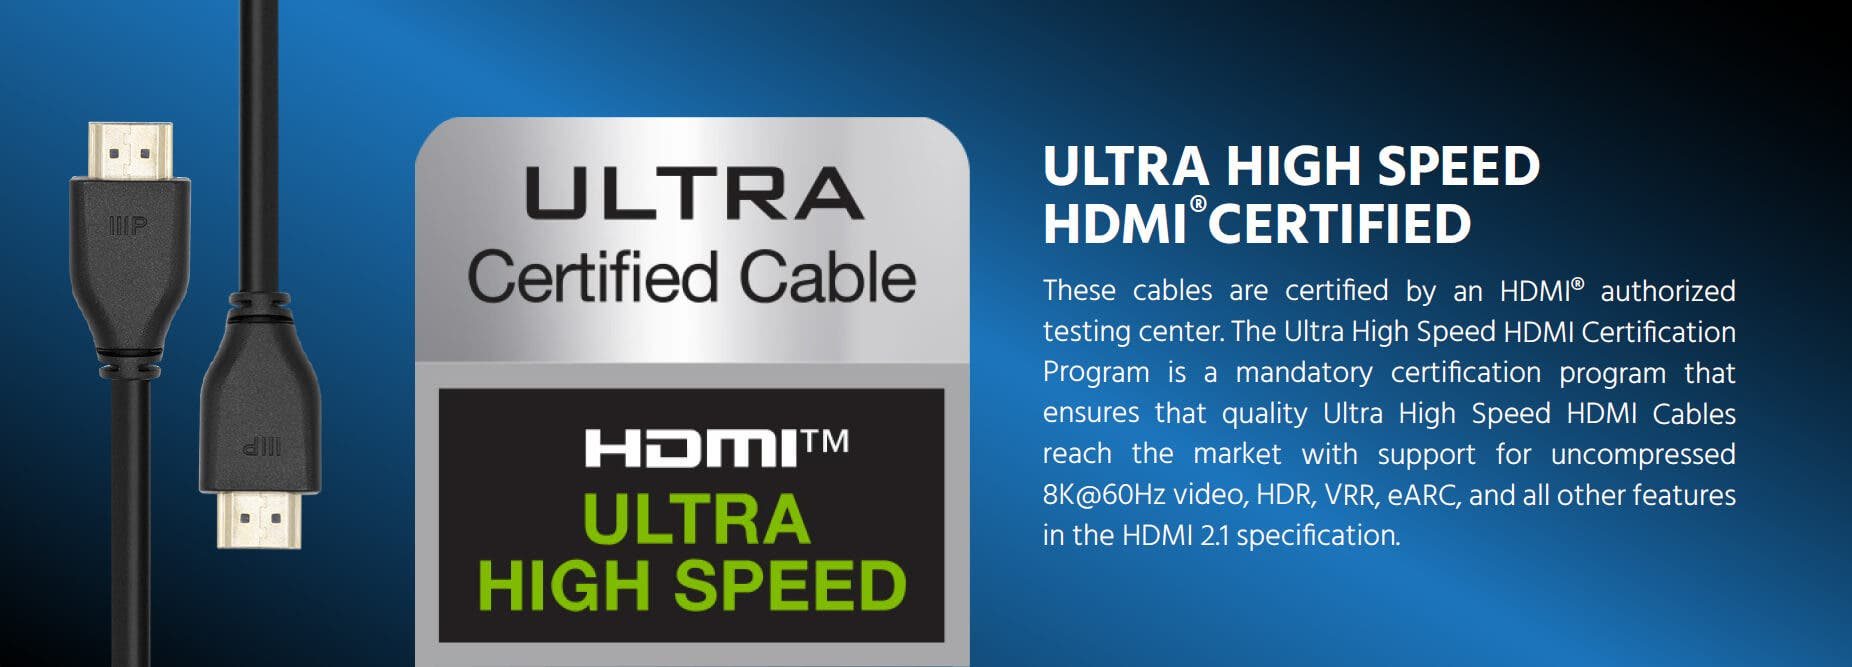 8K Ultra High Speed HDMI Cable